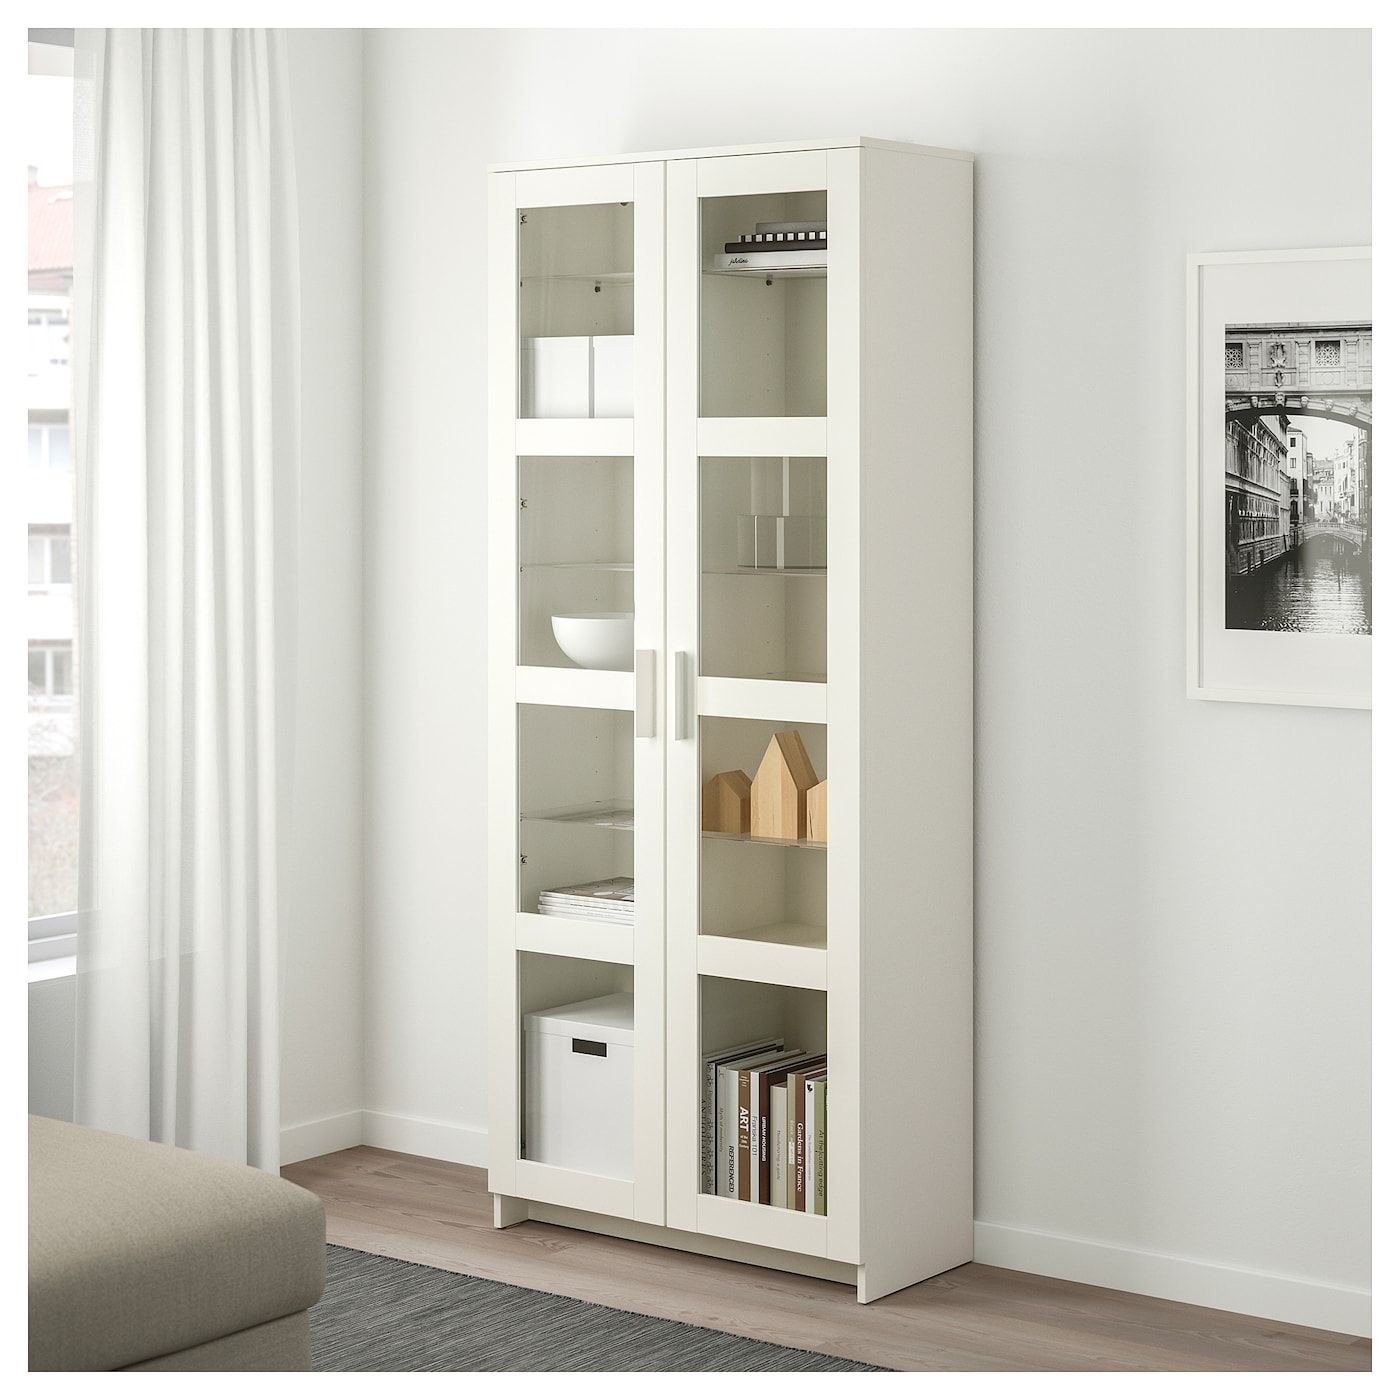 Brimnes Glass Door Cabinet White 31 1 2x74 3 4 80x190 Cm